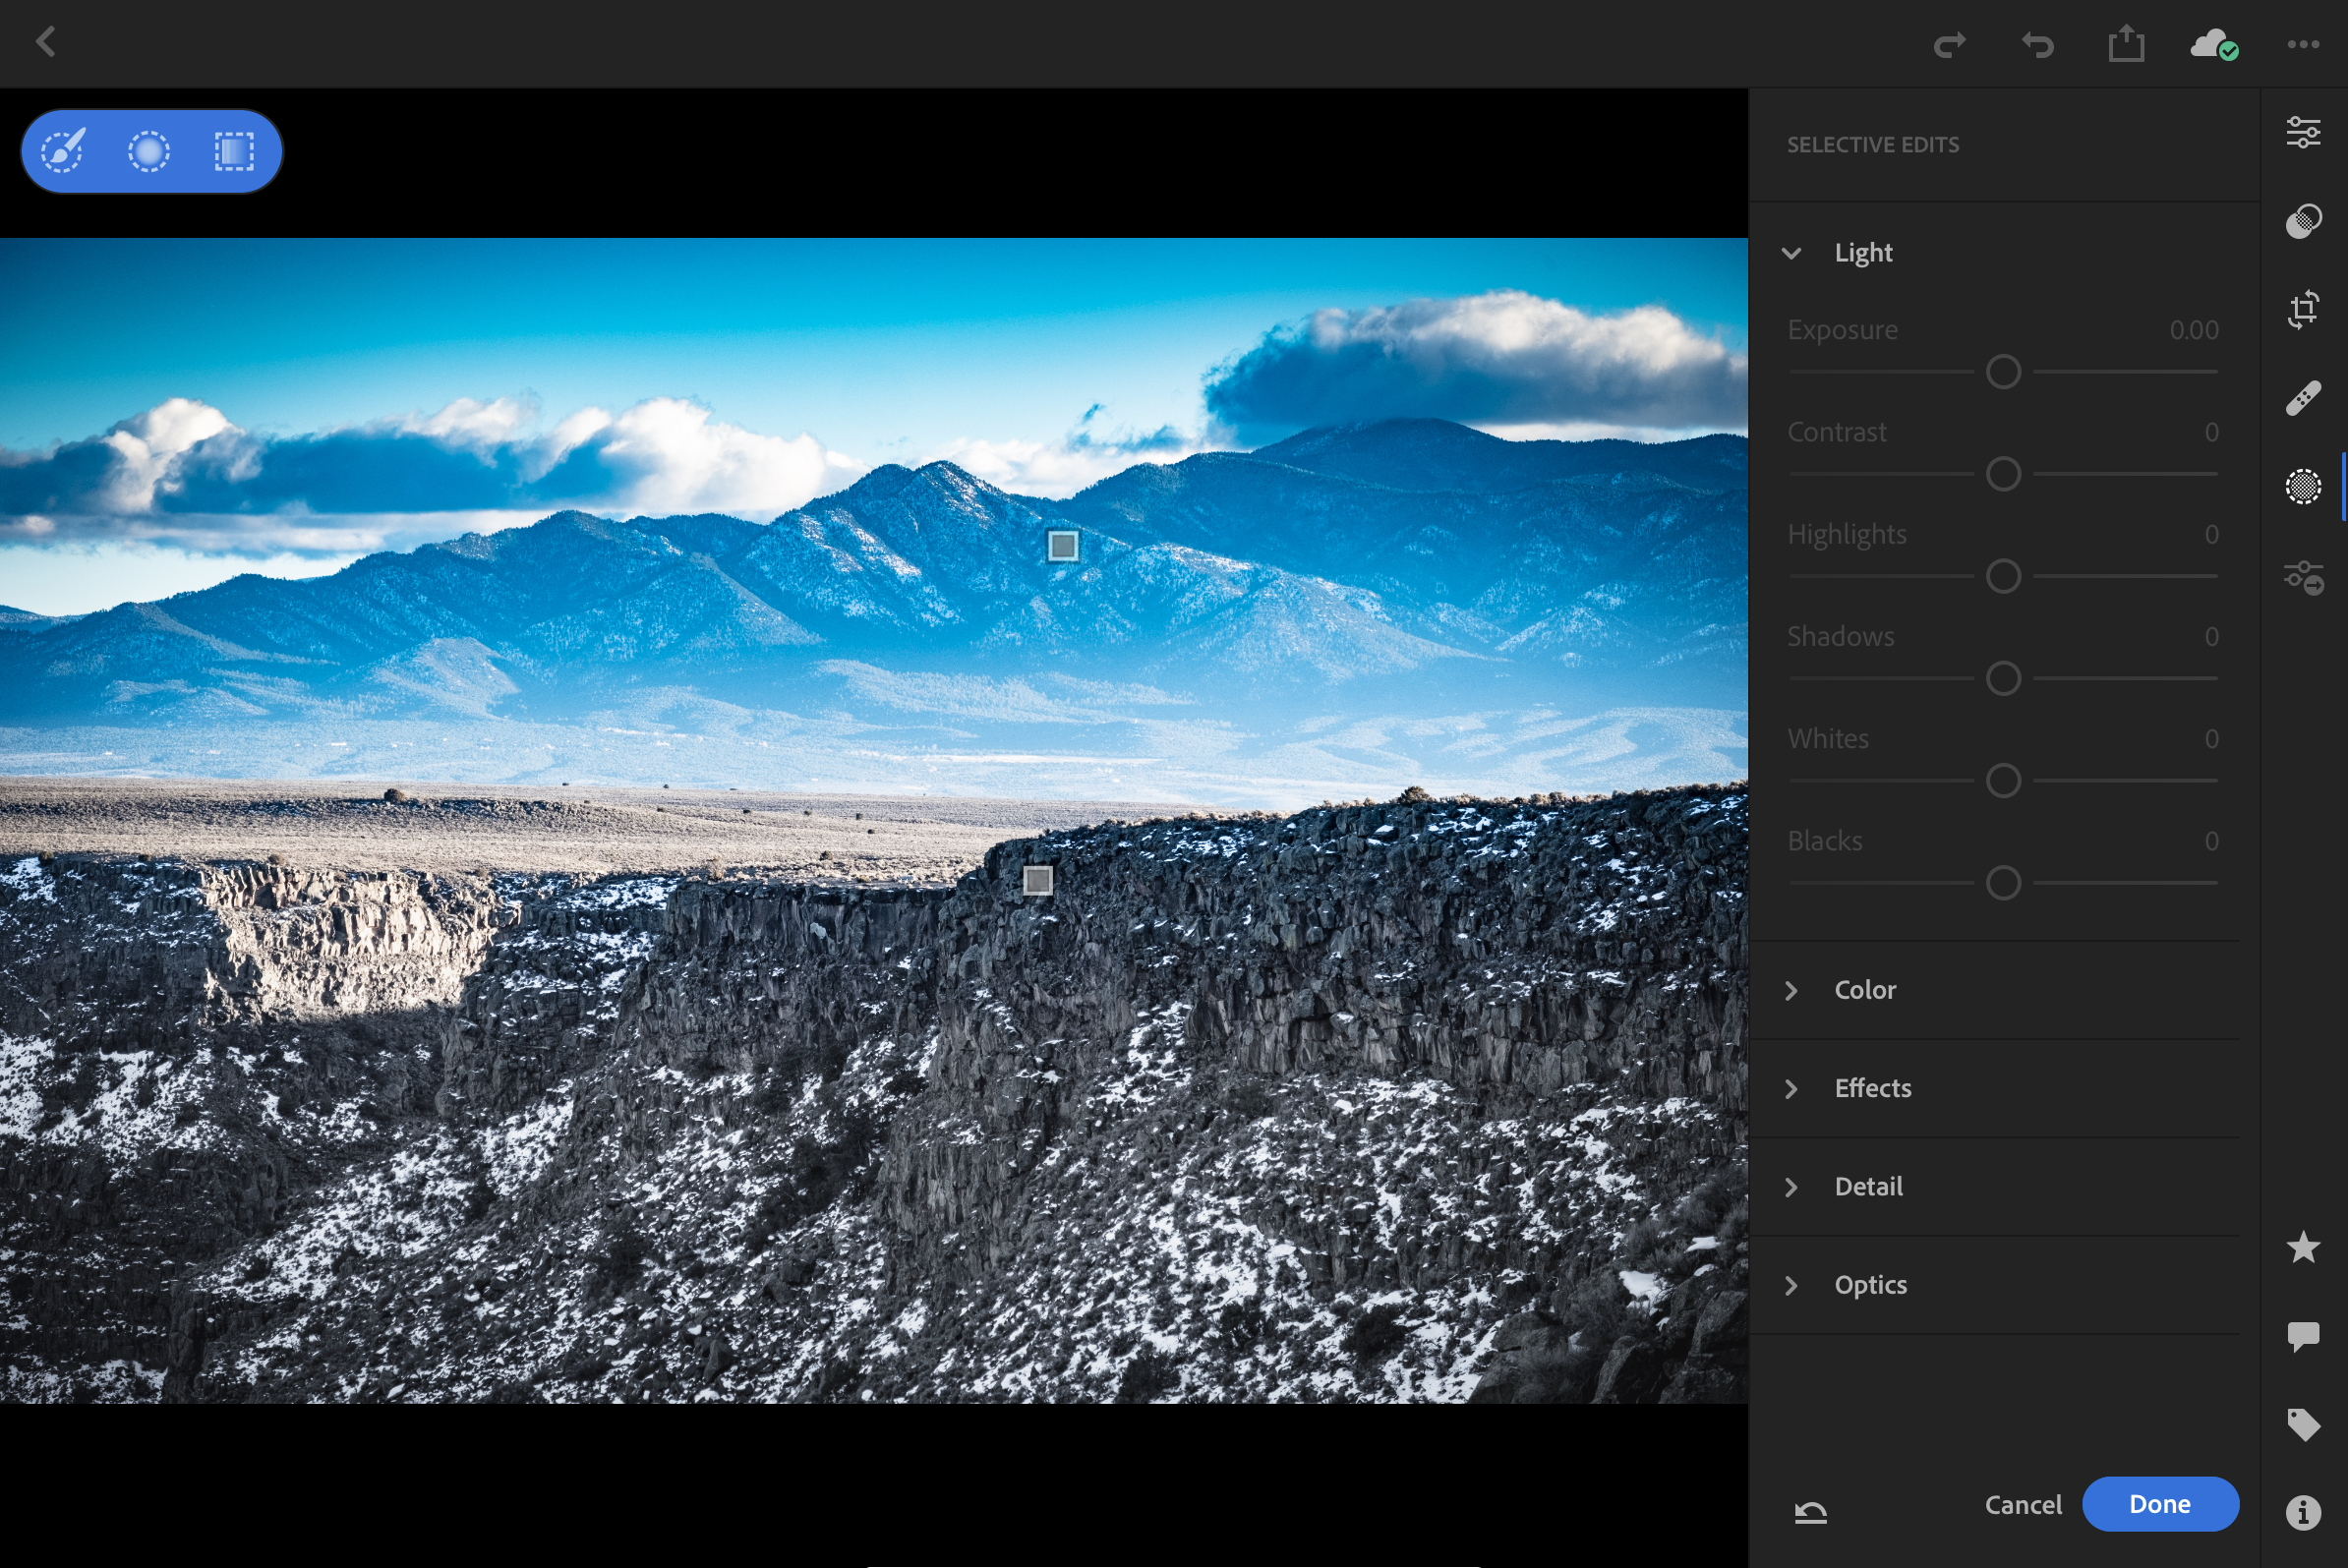 Lightroom CC offering a full suite of exposure and color edits as well as brushes, radial, gradient filters.